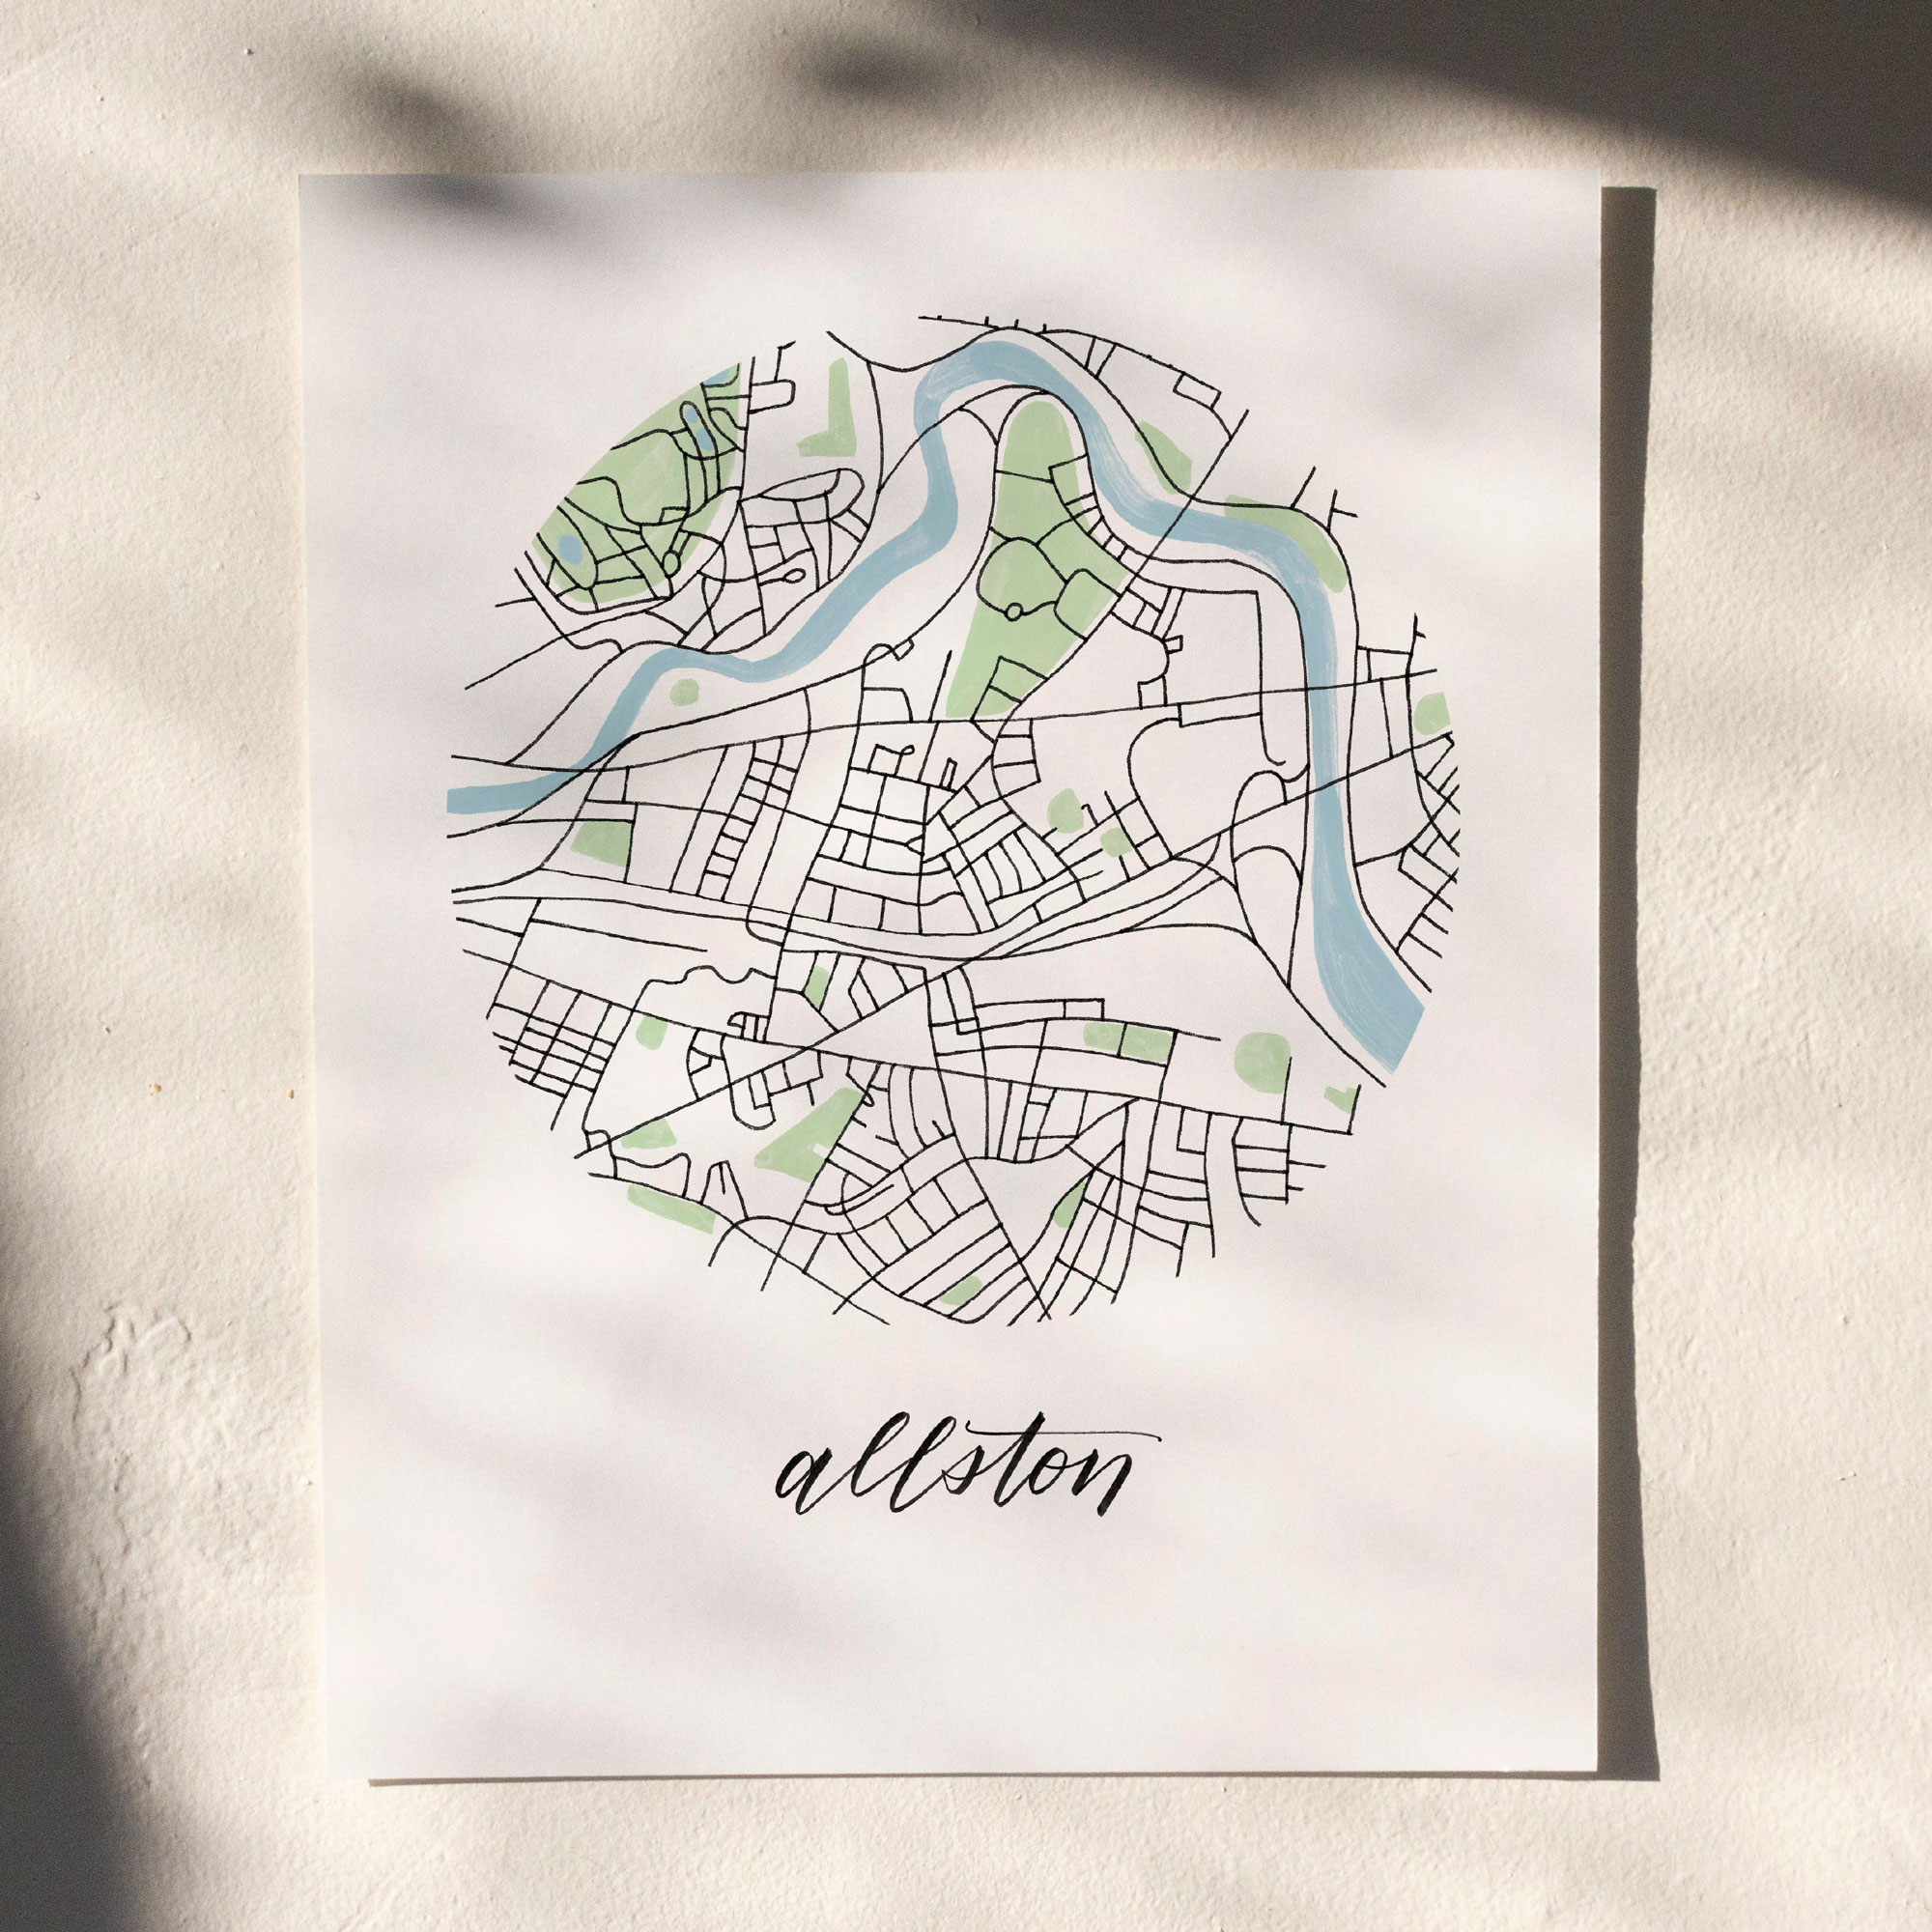 Allston, Boston Map Print hanging on white wall with leaf shadows across the image